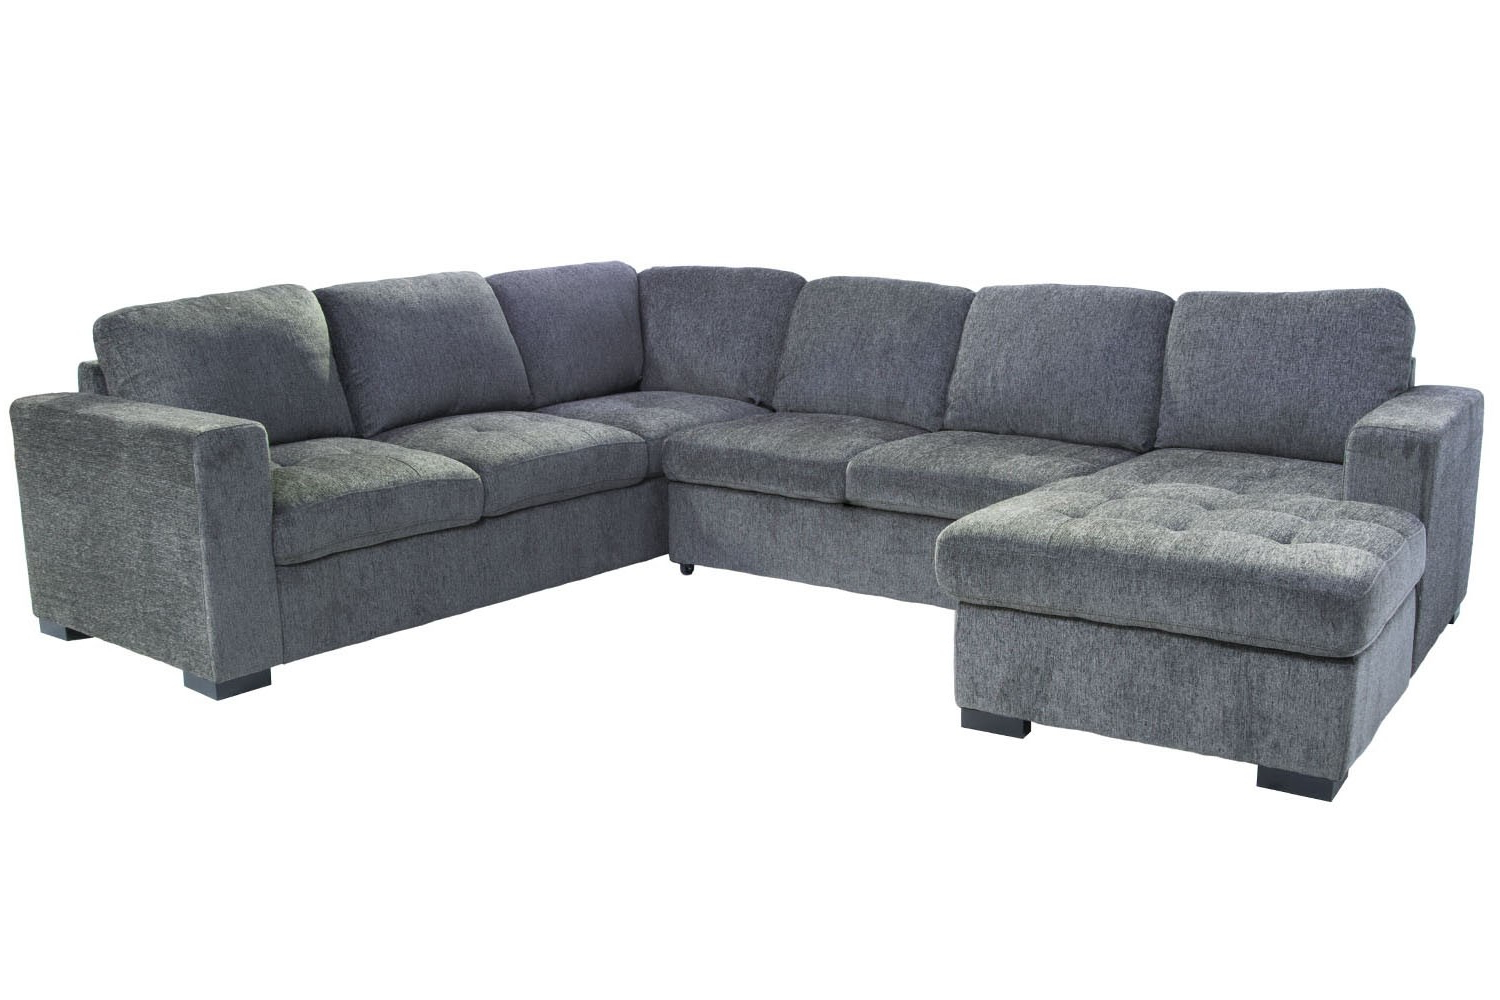 2018 Escondido Sofa Chairs Within Sectional Sofas (View 2 of 20)